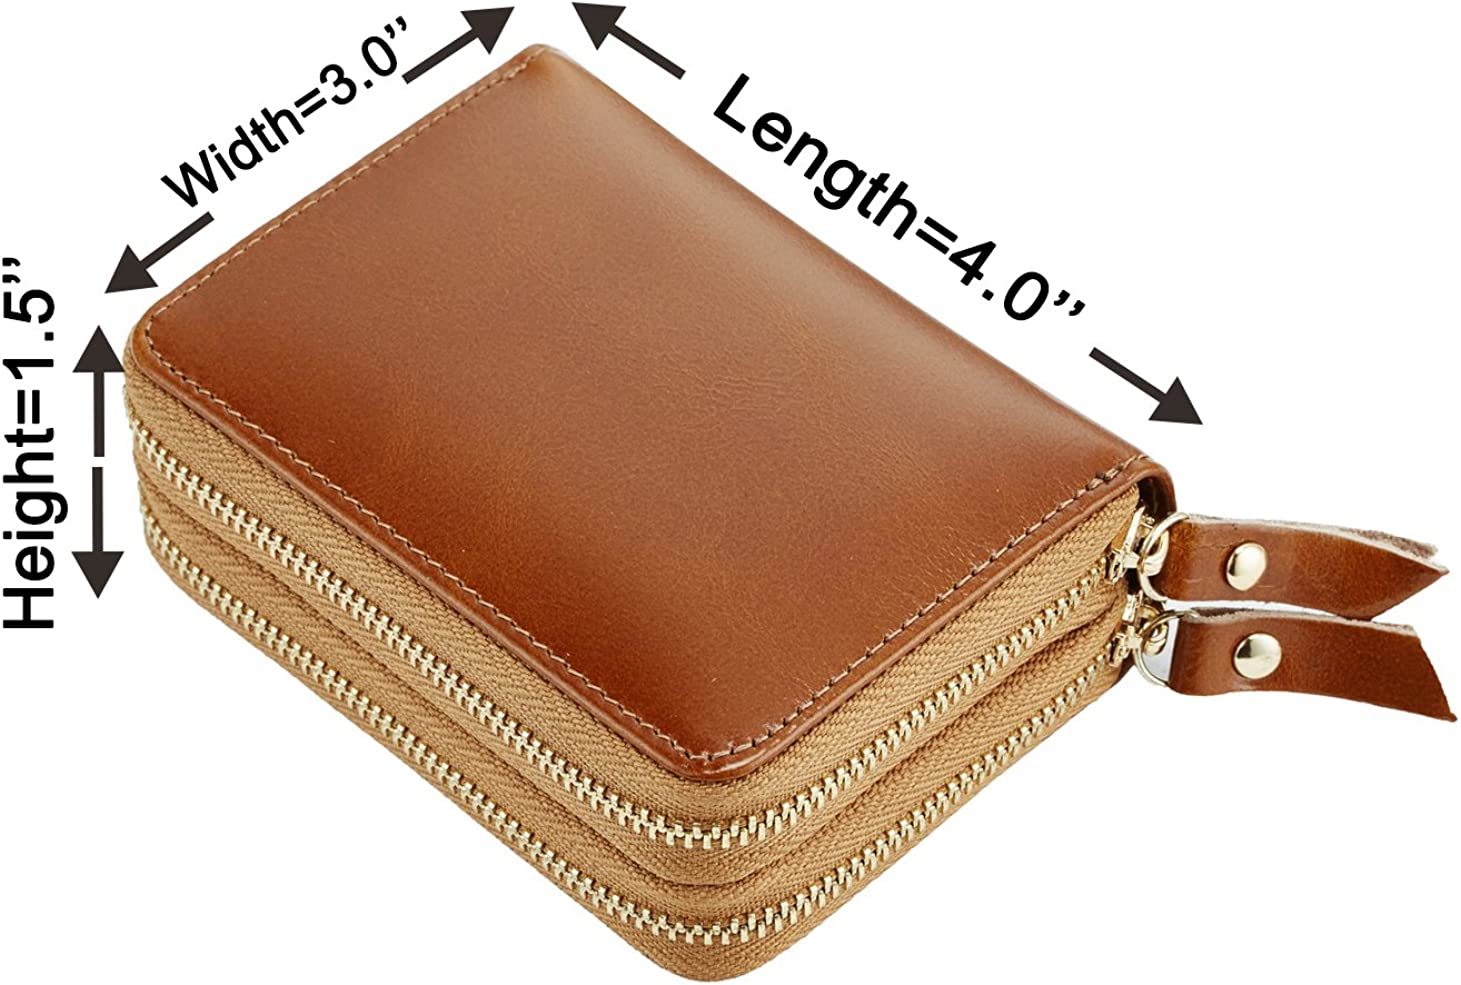 NapaWalli Womens Genuine Leather RFID Secure Spacious Cute Zipper Card Wallet Small Purse